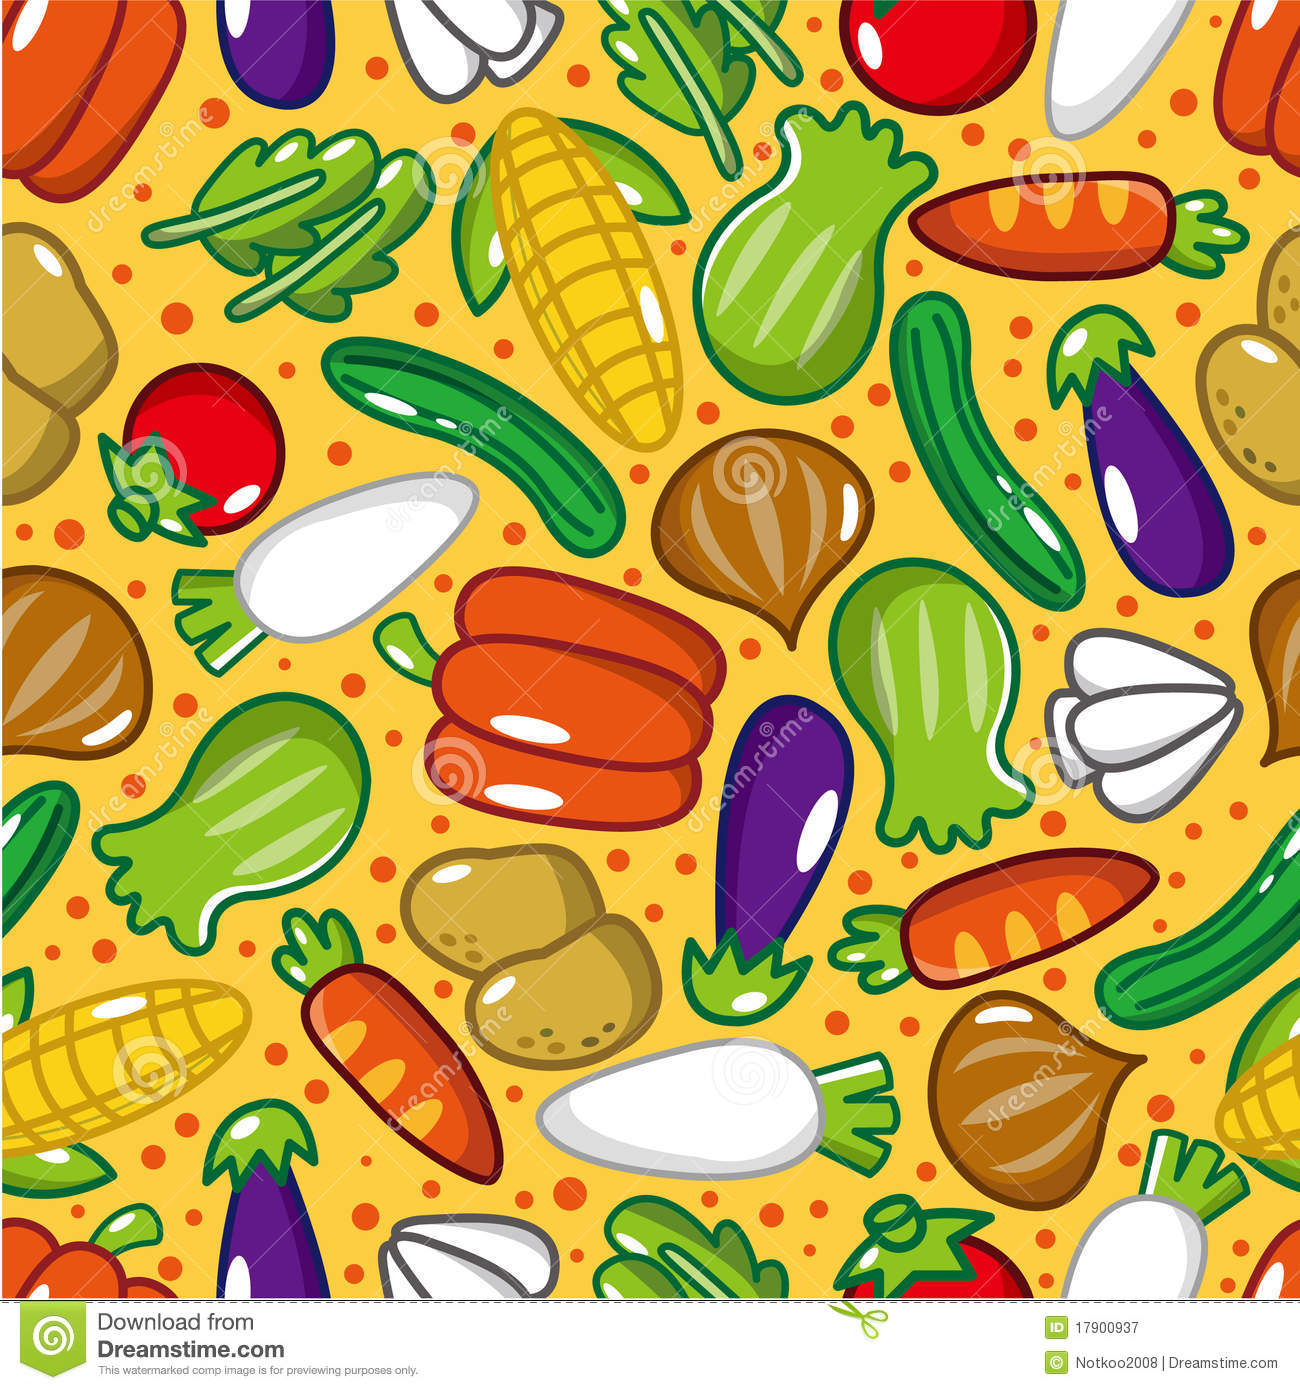 Vegetable pattern - photo#25